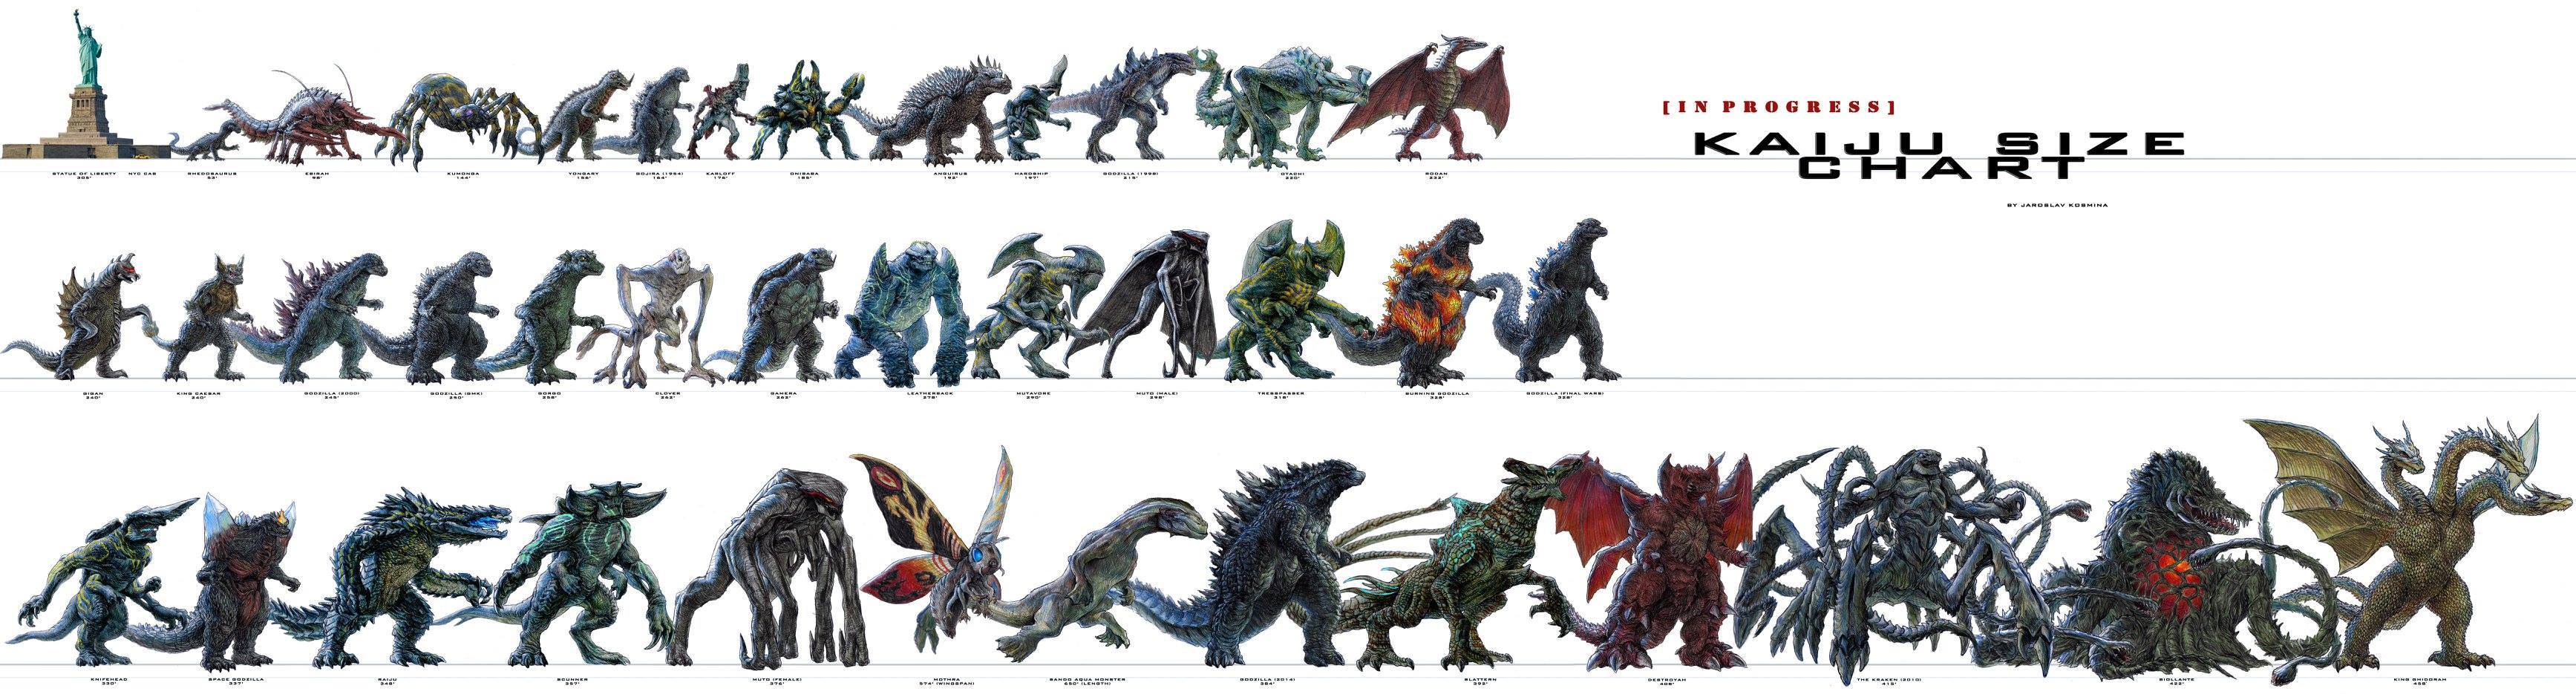 Kaiju Size Chart by Jaroslav Kosmina. Used with Permission.